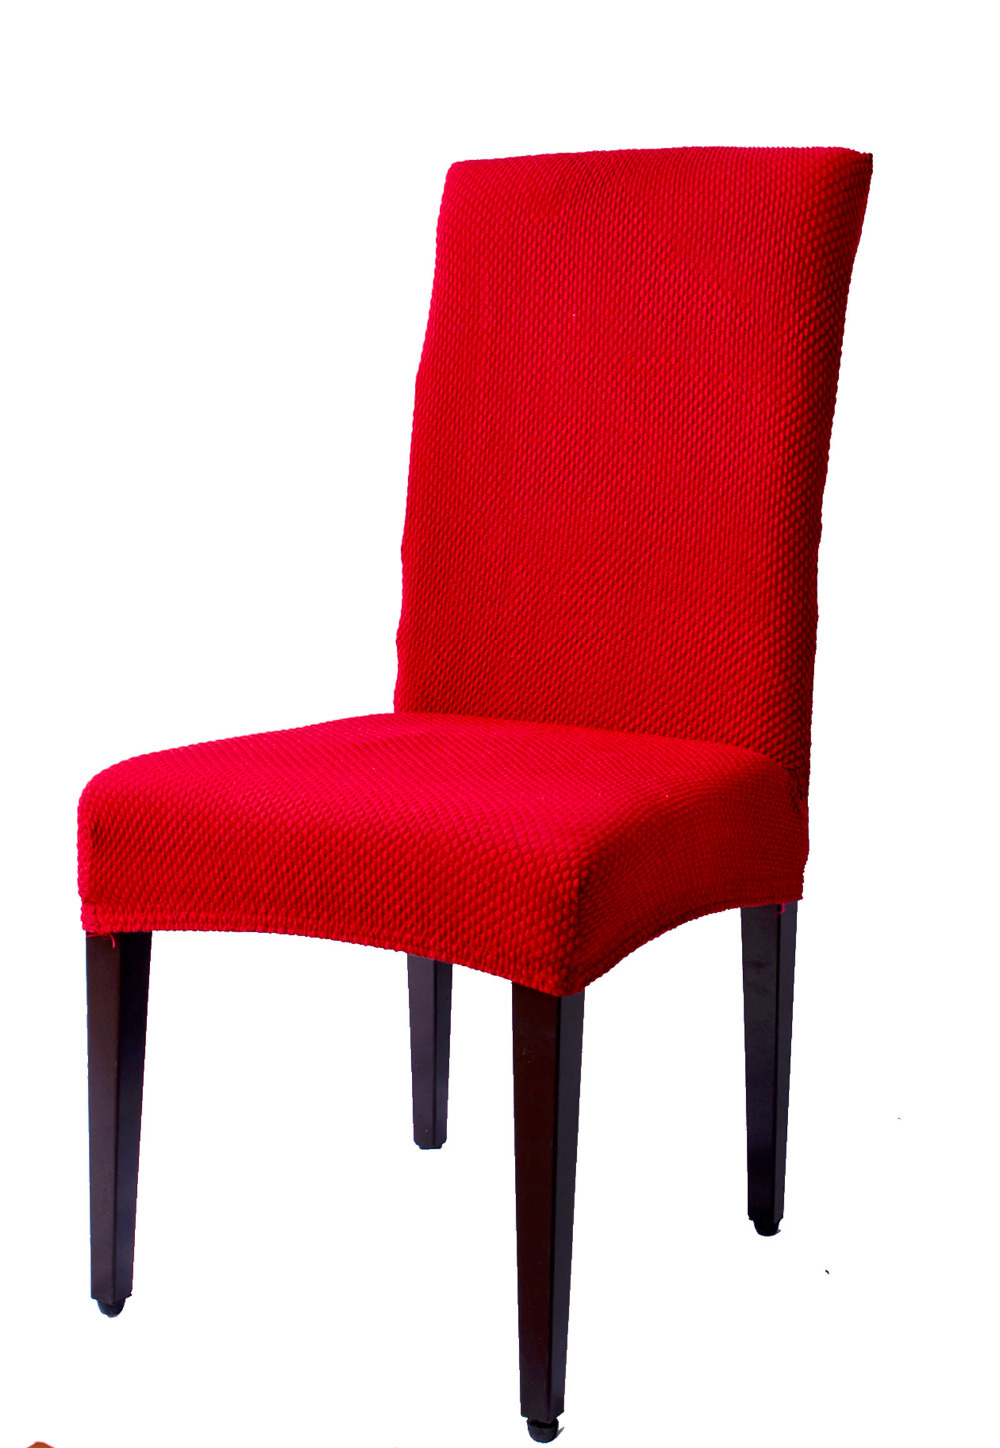 Dining room decorate spandex jacquard fabric dyed chair for Dining room chair covers